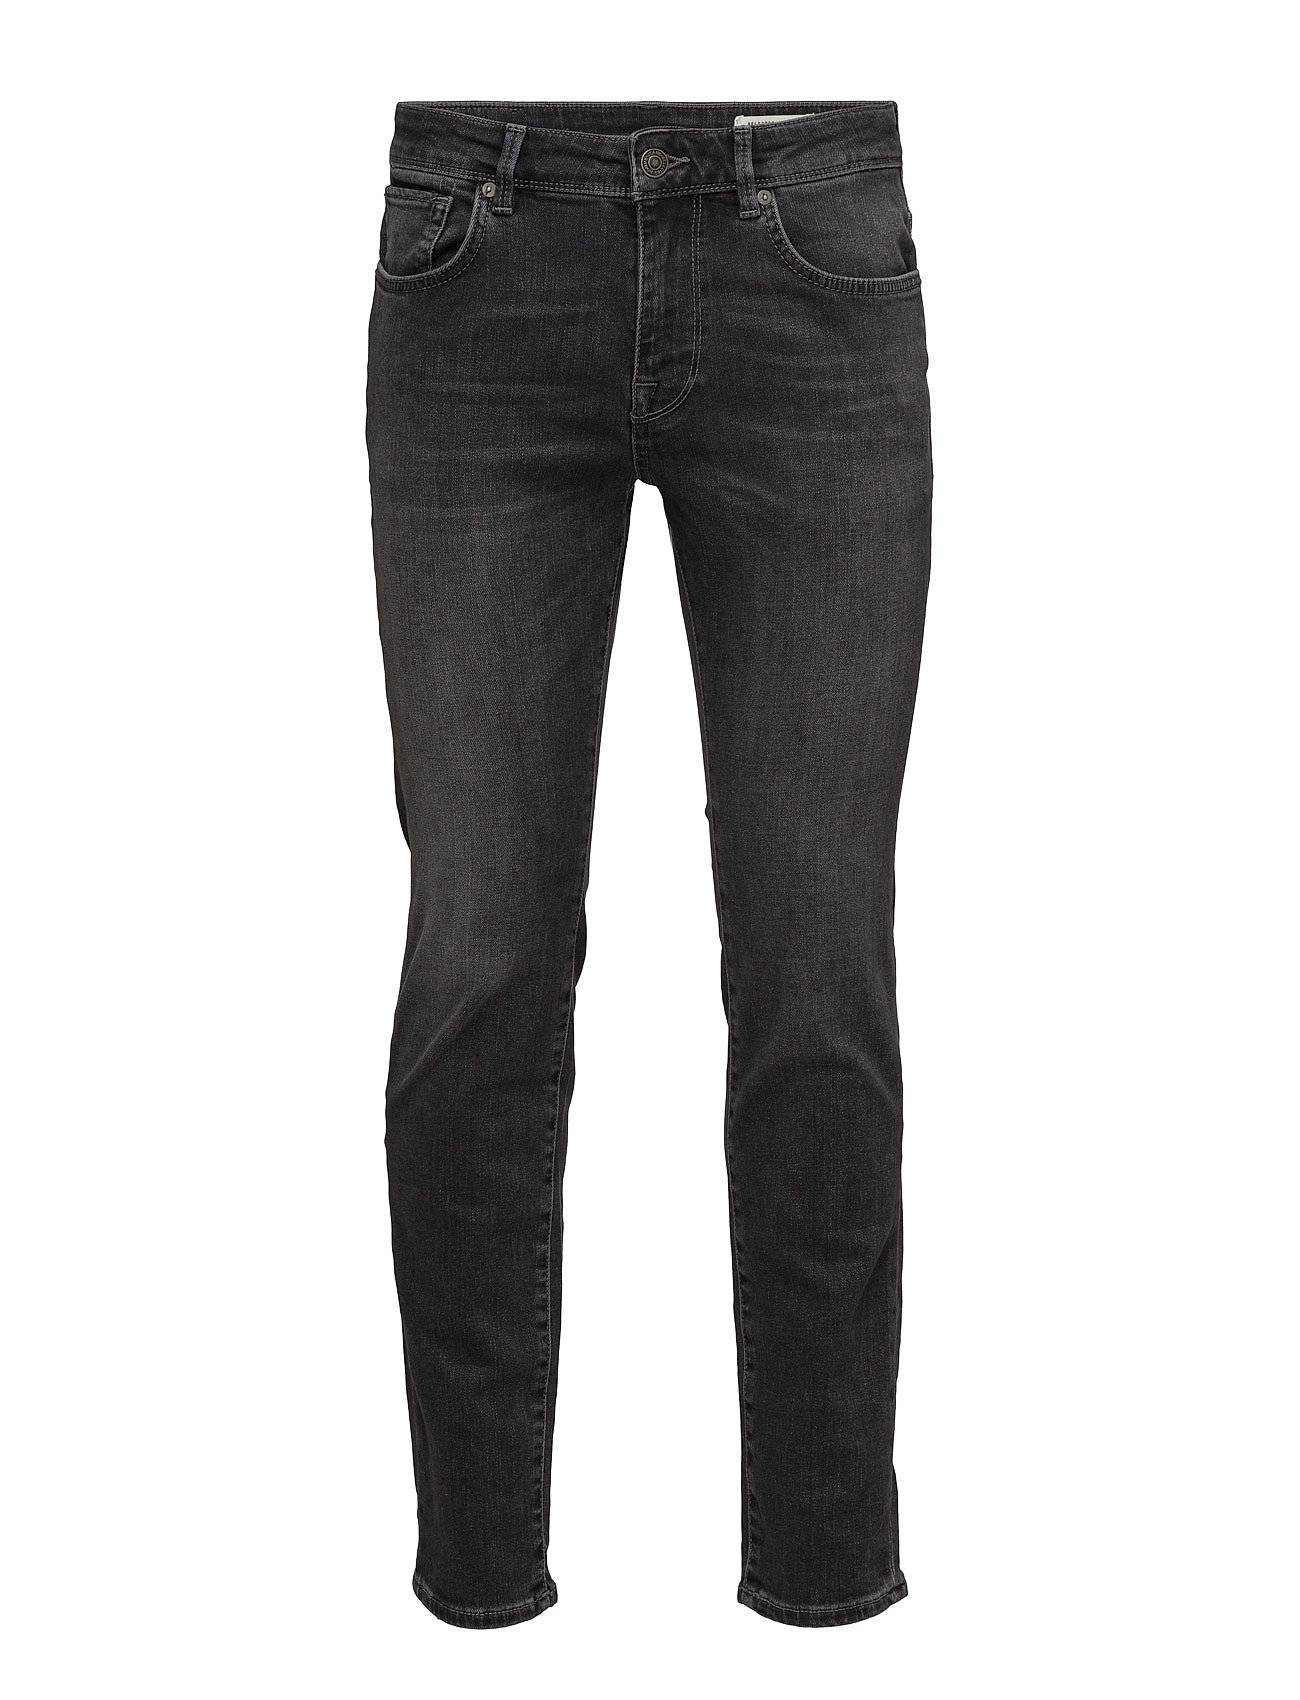 Selected Homme Shnslim-Leon 1005 Grey St Jns W Noos